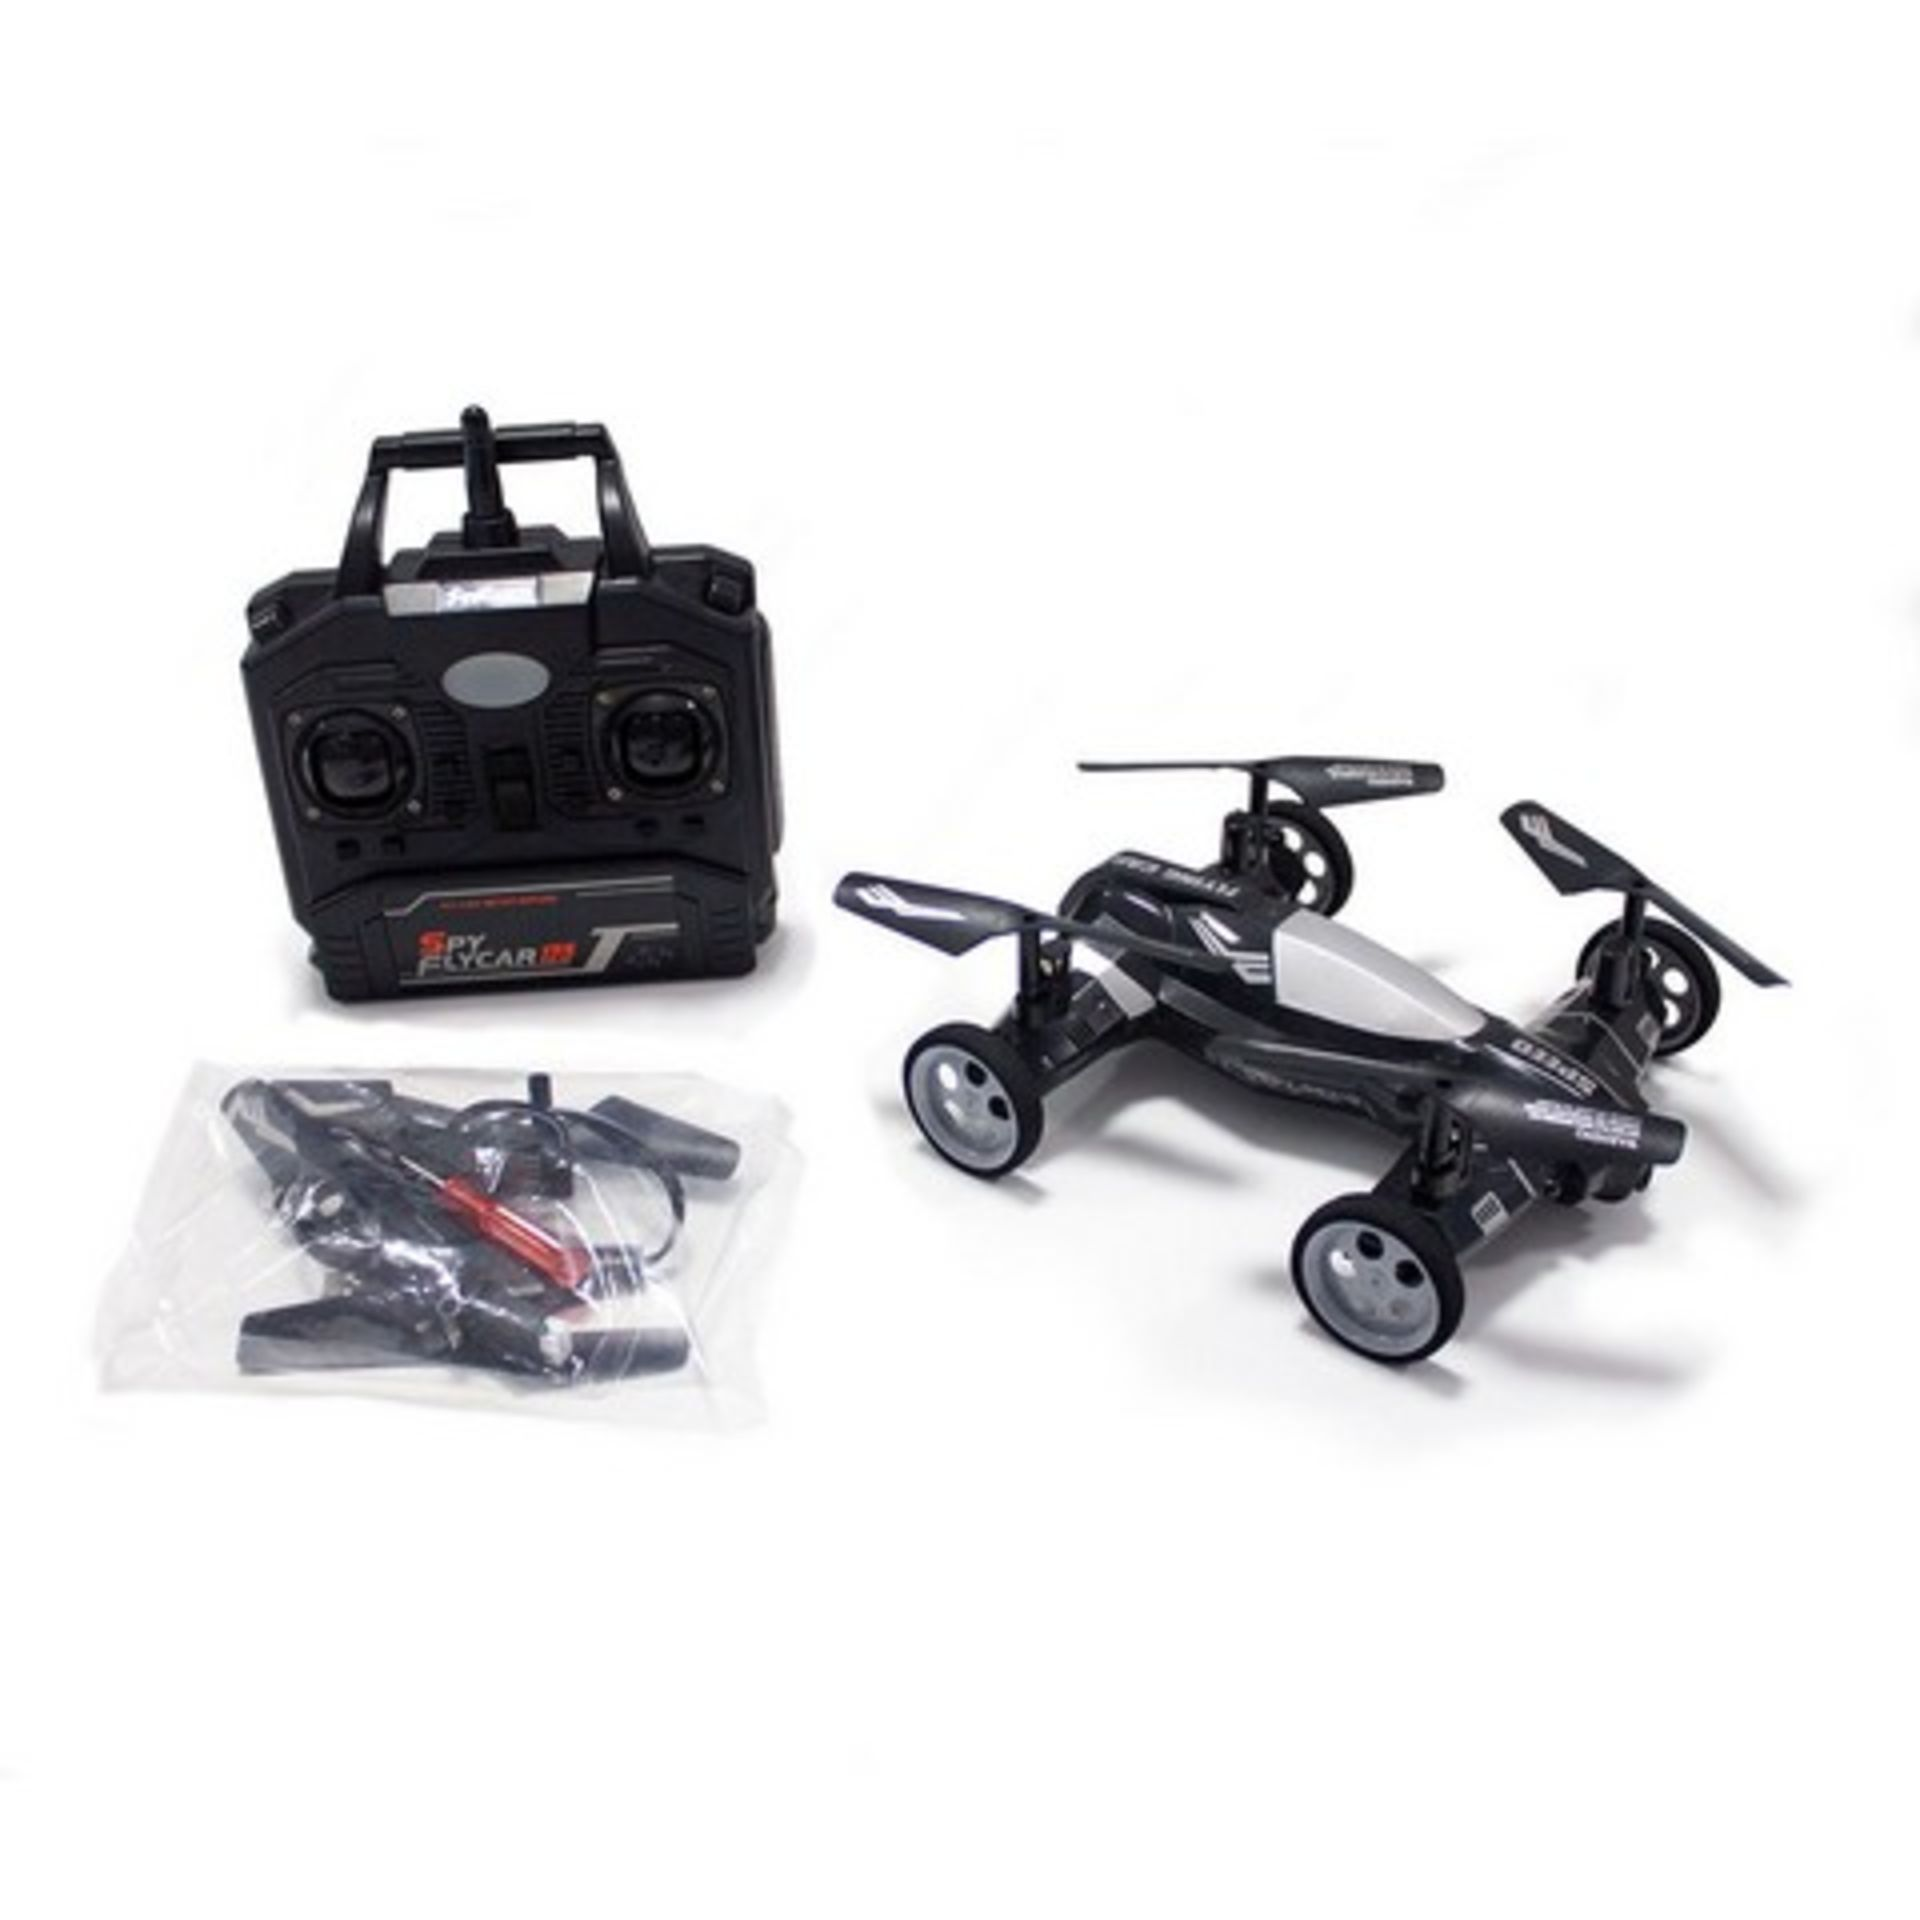 Lot 51820 - V Brand New Radio Control Quad-Copter Orbit Moon Buggy - 720P HD Camera - 4GB Micro SD Card Included